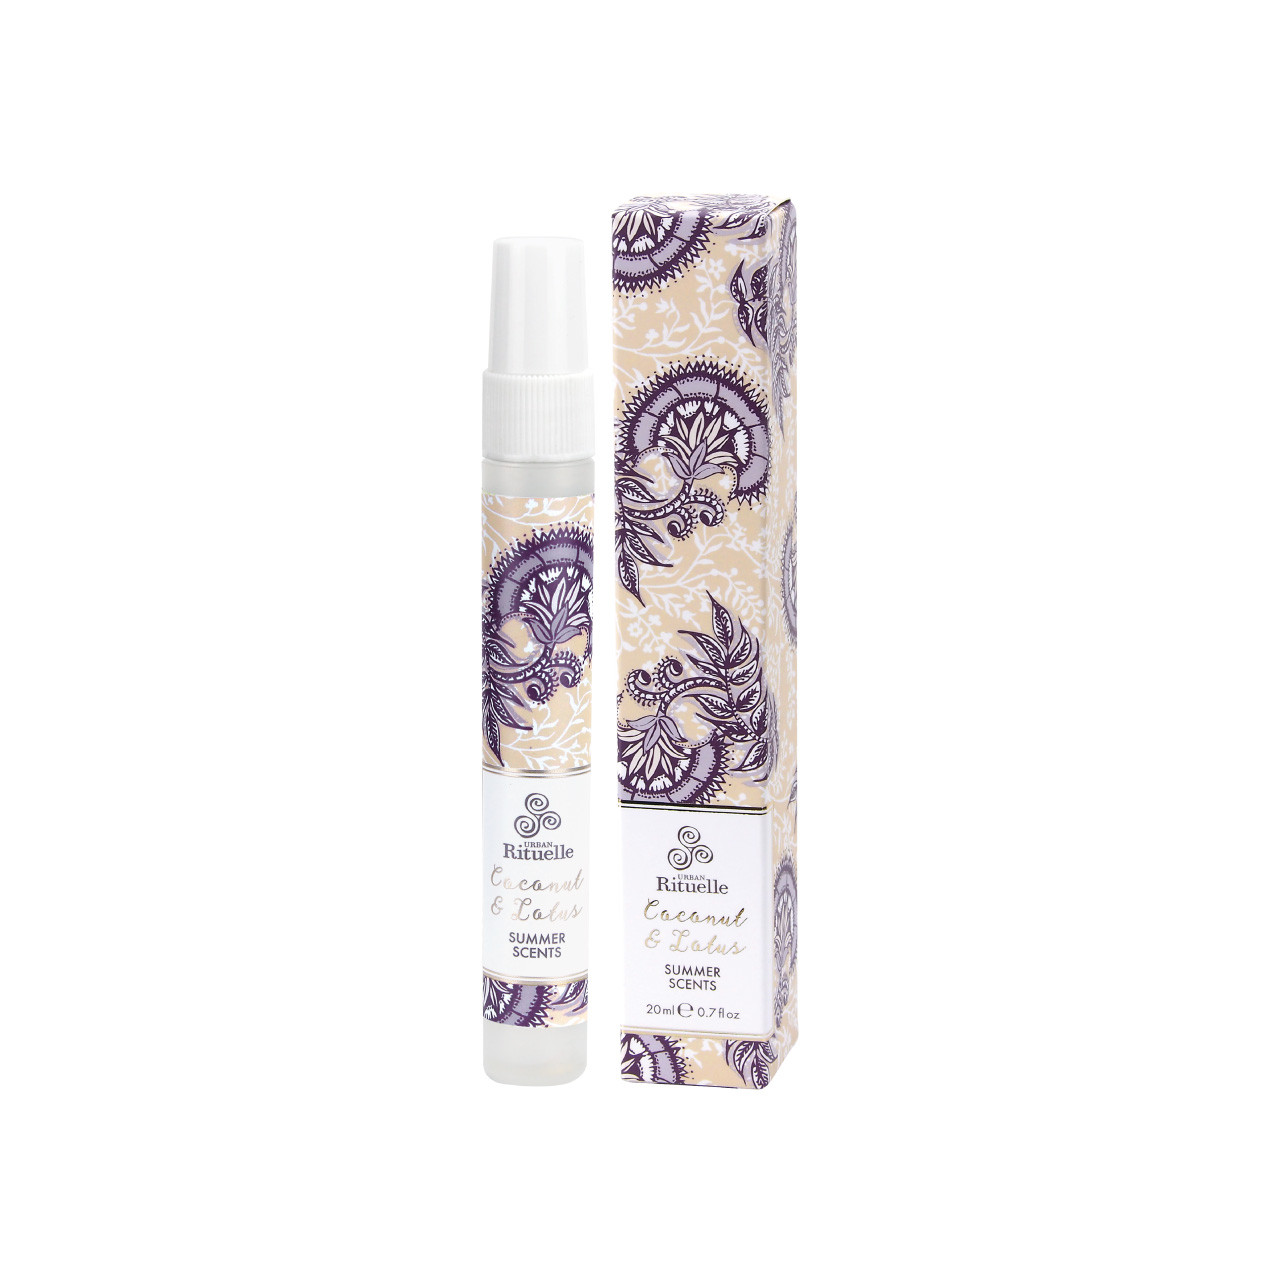 Summer Scents - Coconut & Lotus Perfume - Urban Rituelle